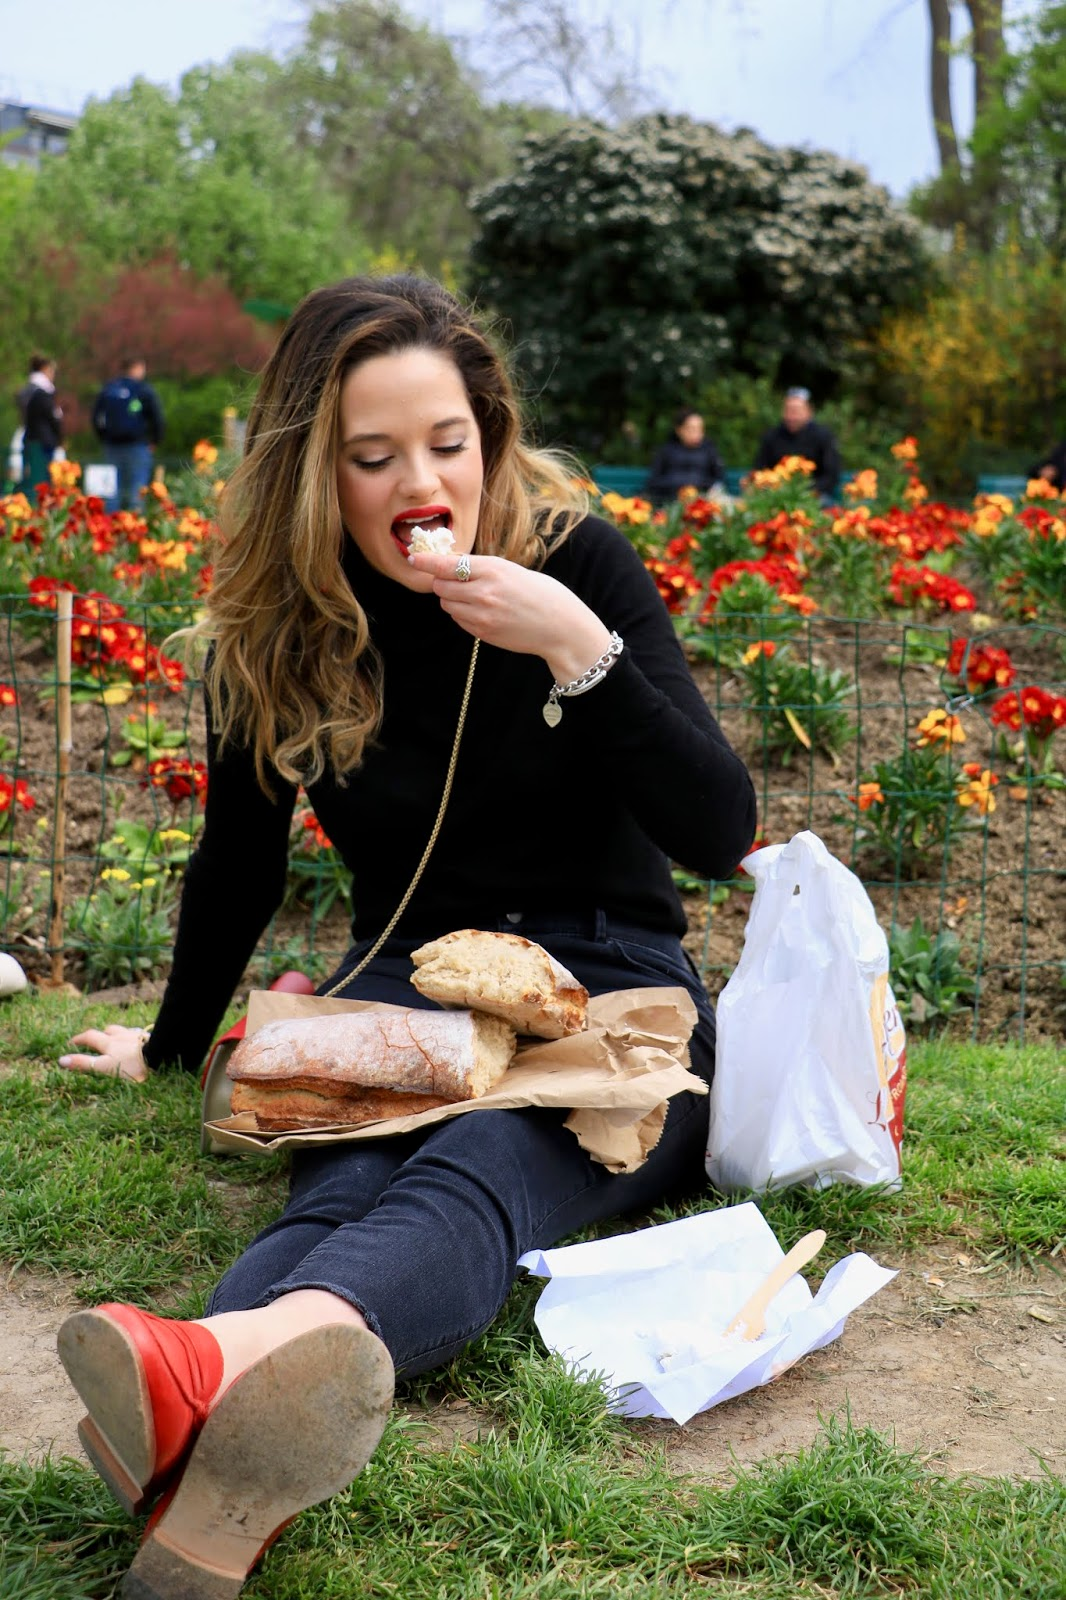 Eiffel Tower picnic of bread cheese